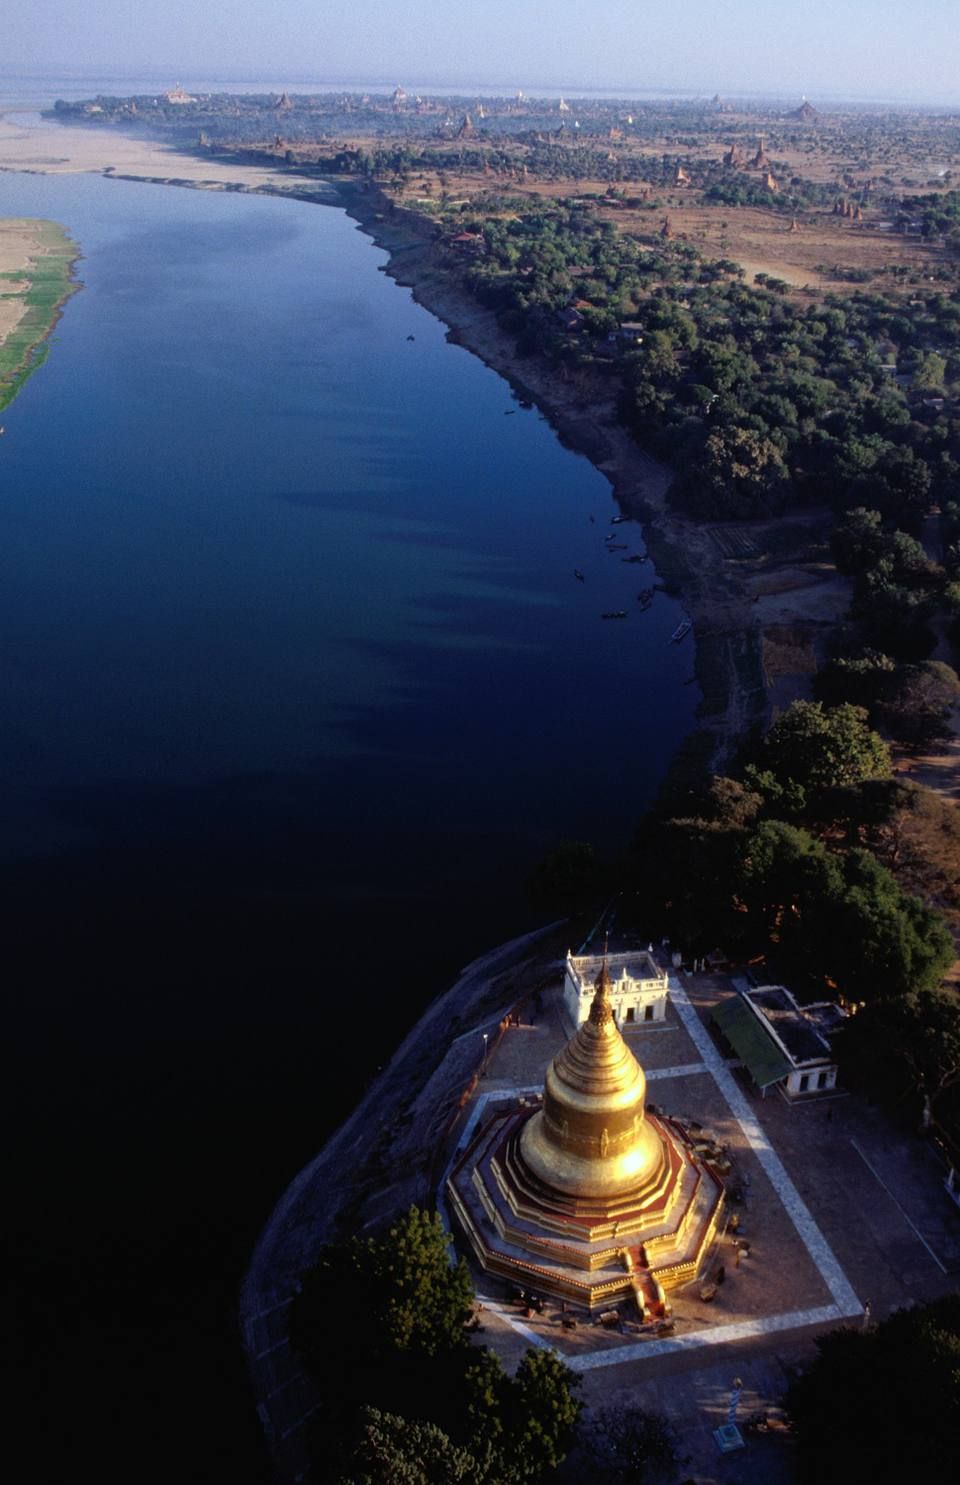 Bird's eye view of Lawkananda Stupa, Bagan, Myanmar